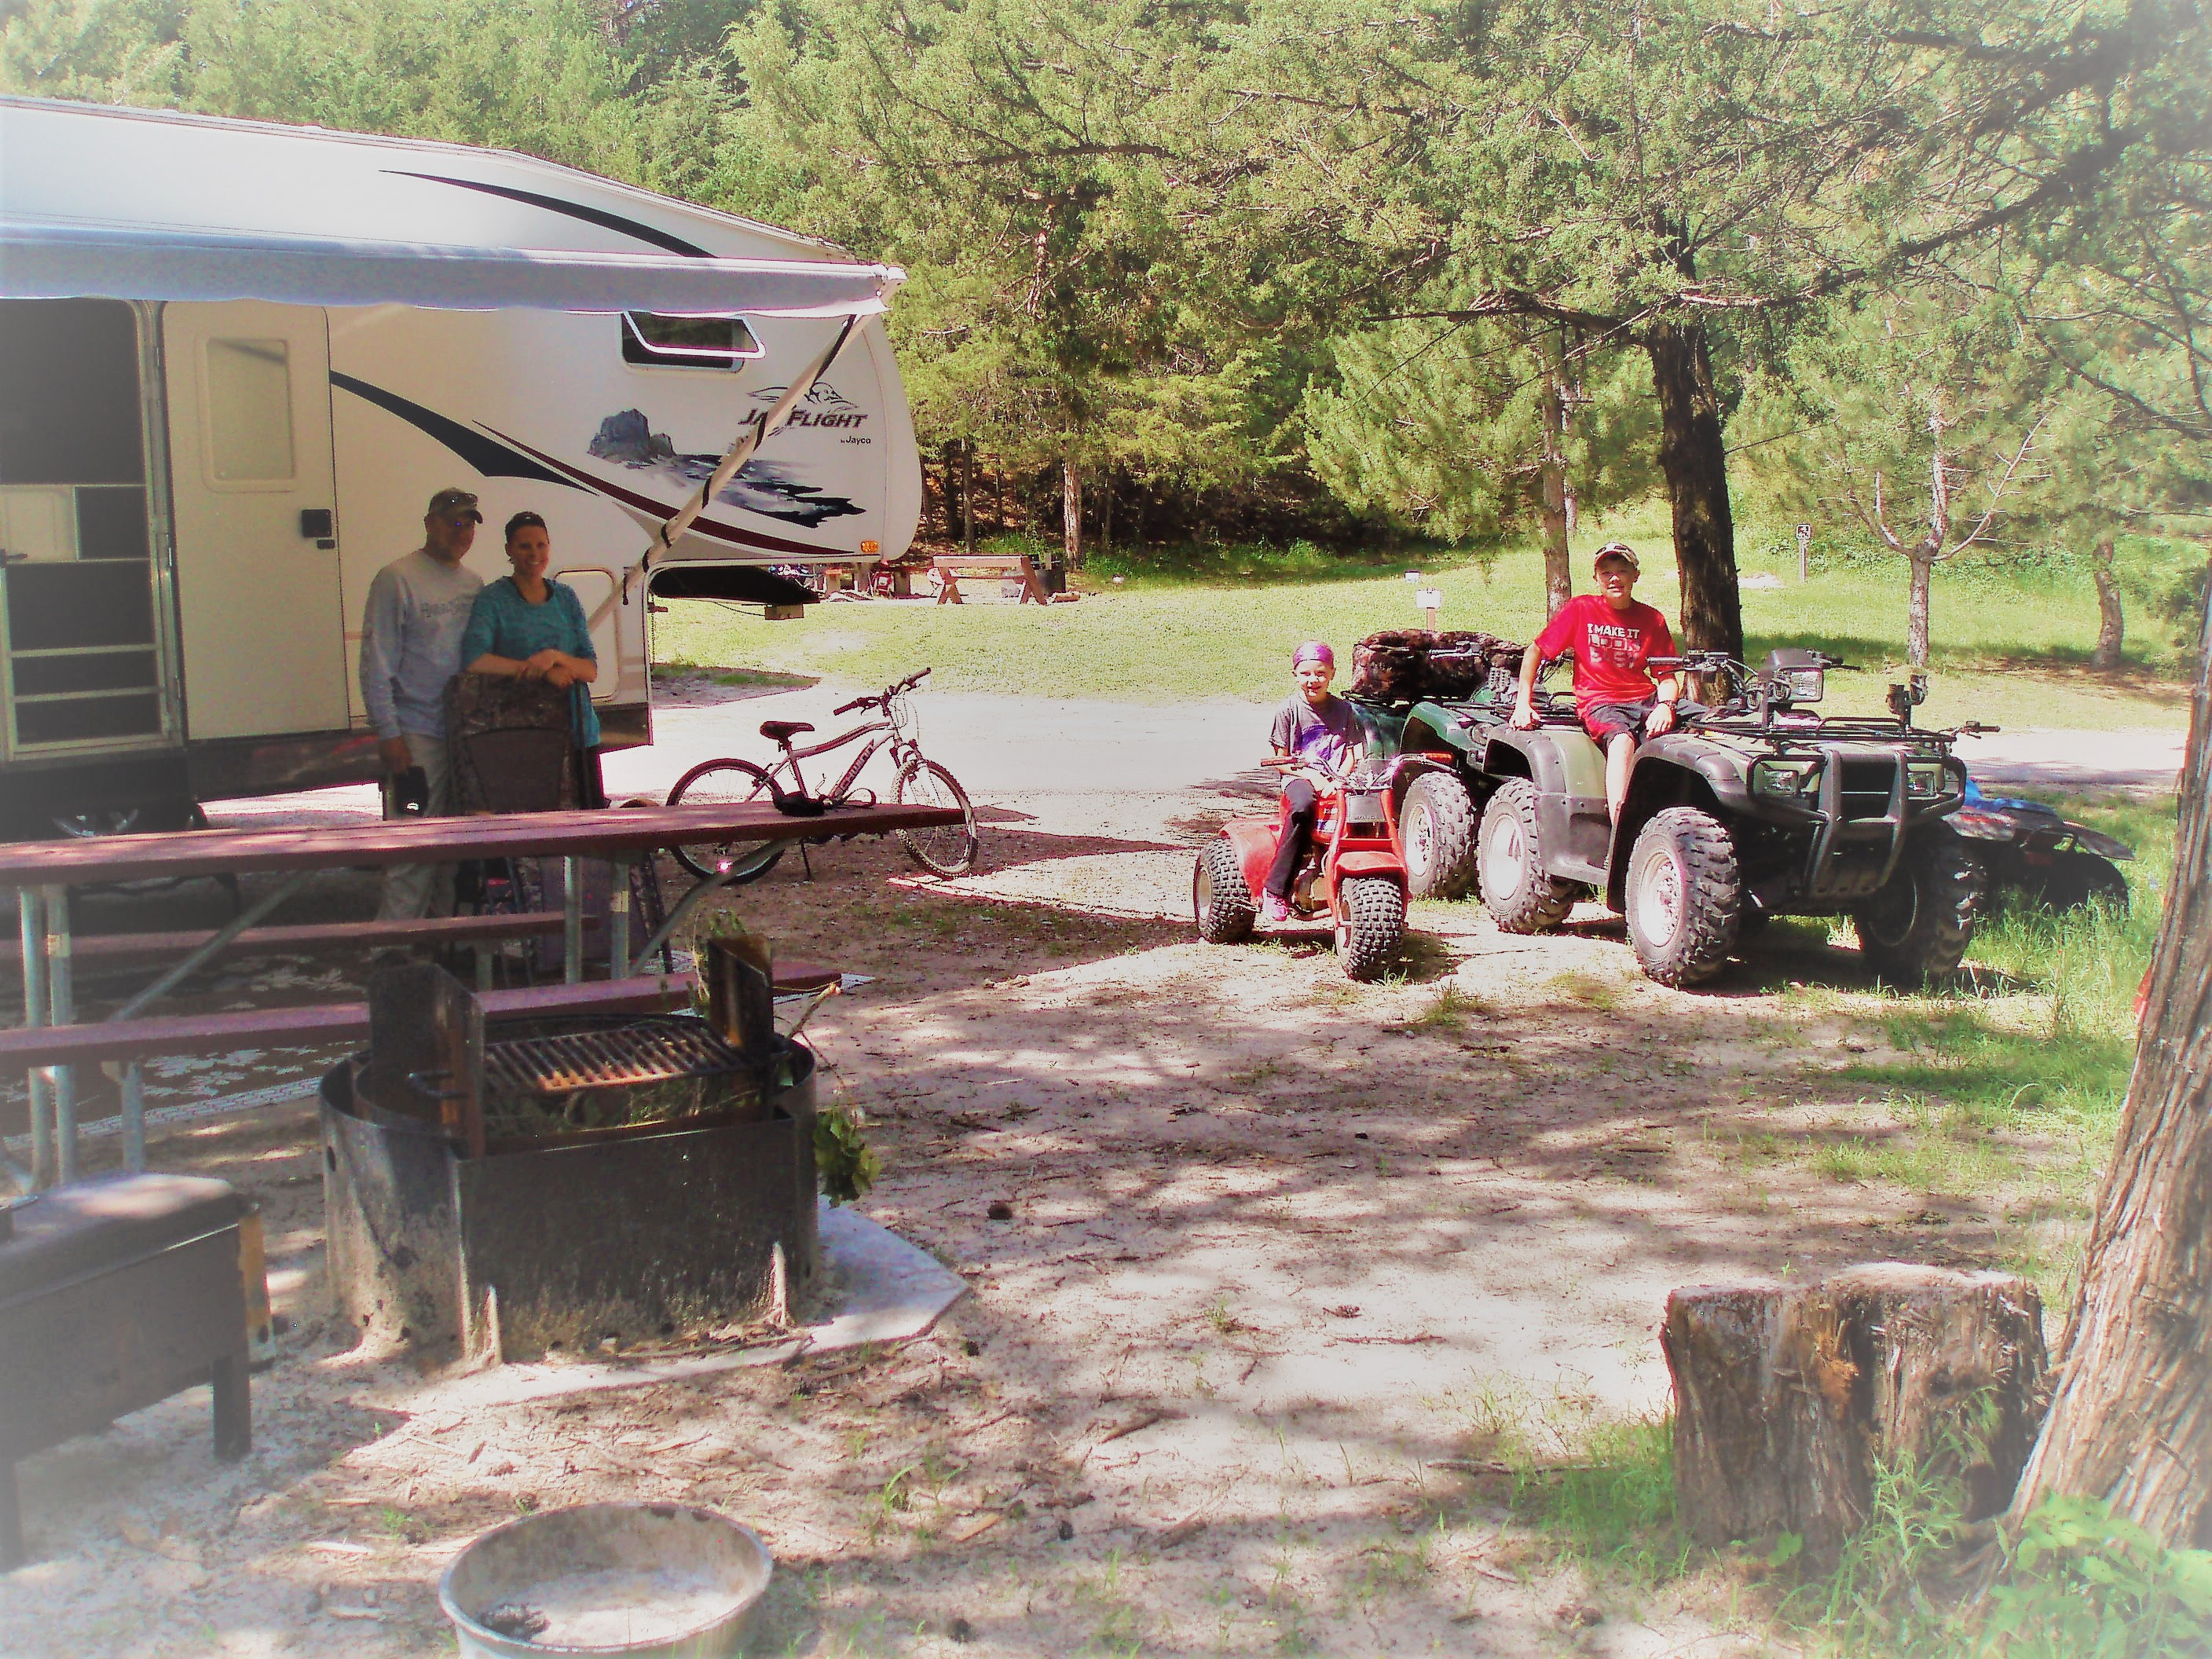 A family in front of their RV at one of the campsites.